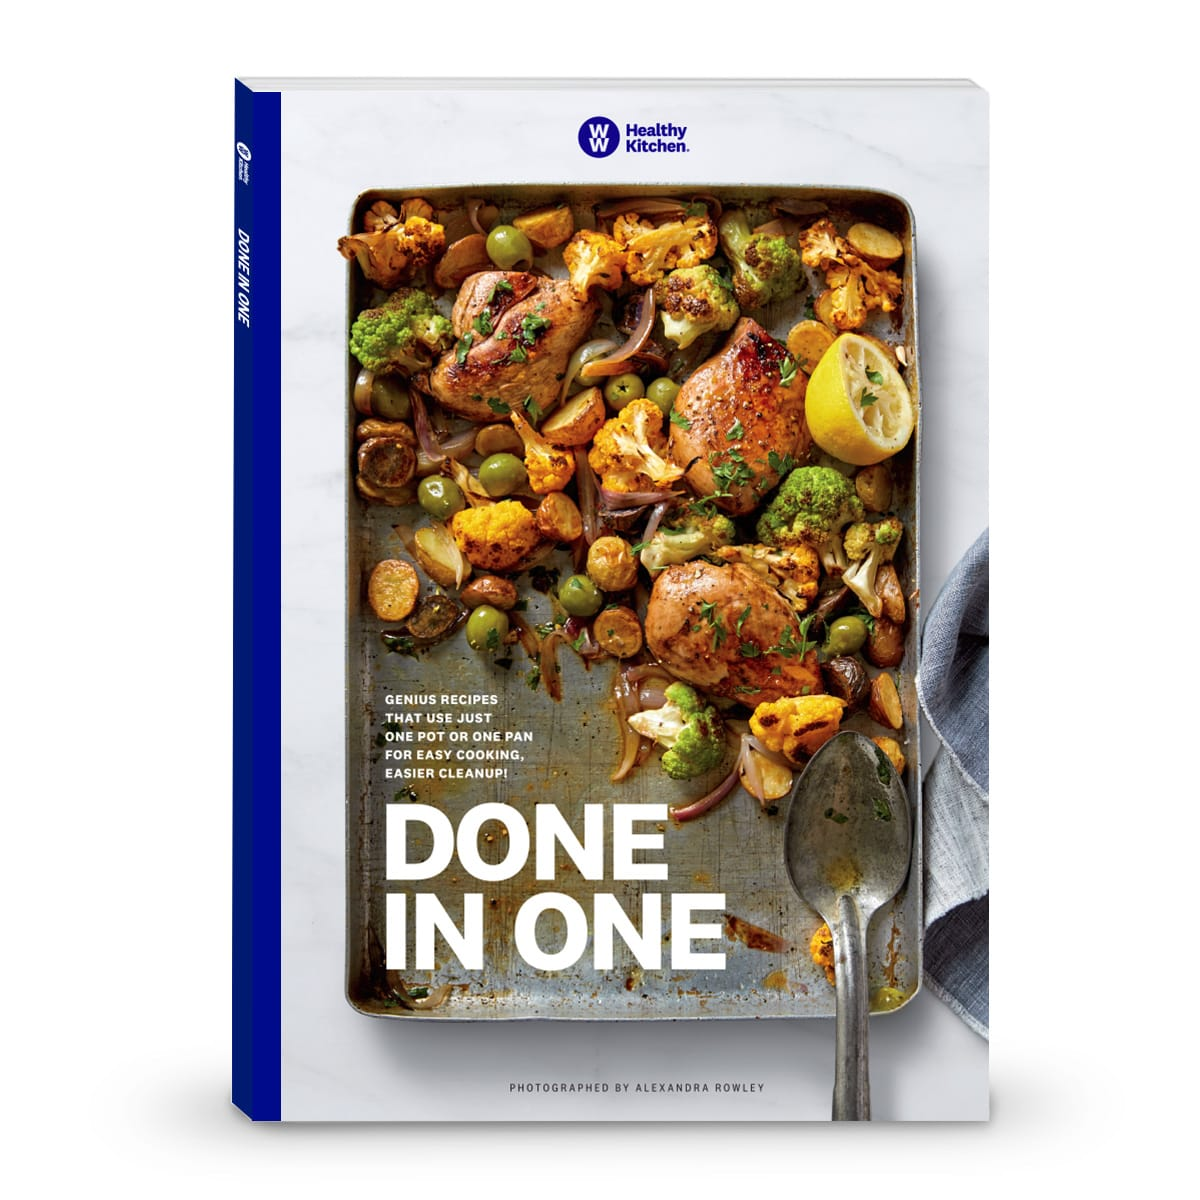 Done in One Cookbook, front cover of book, recipes using one one or pan